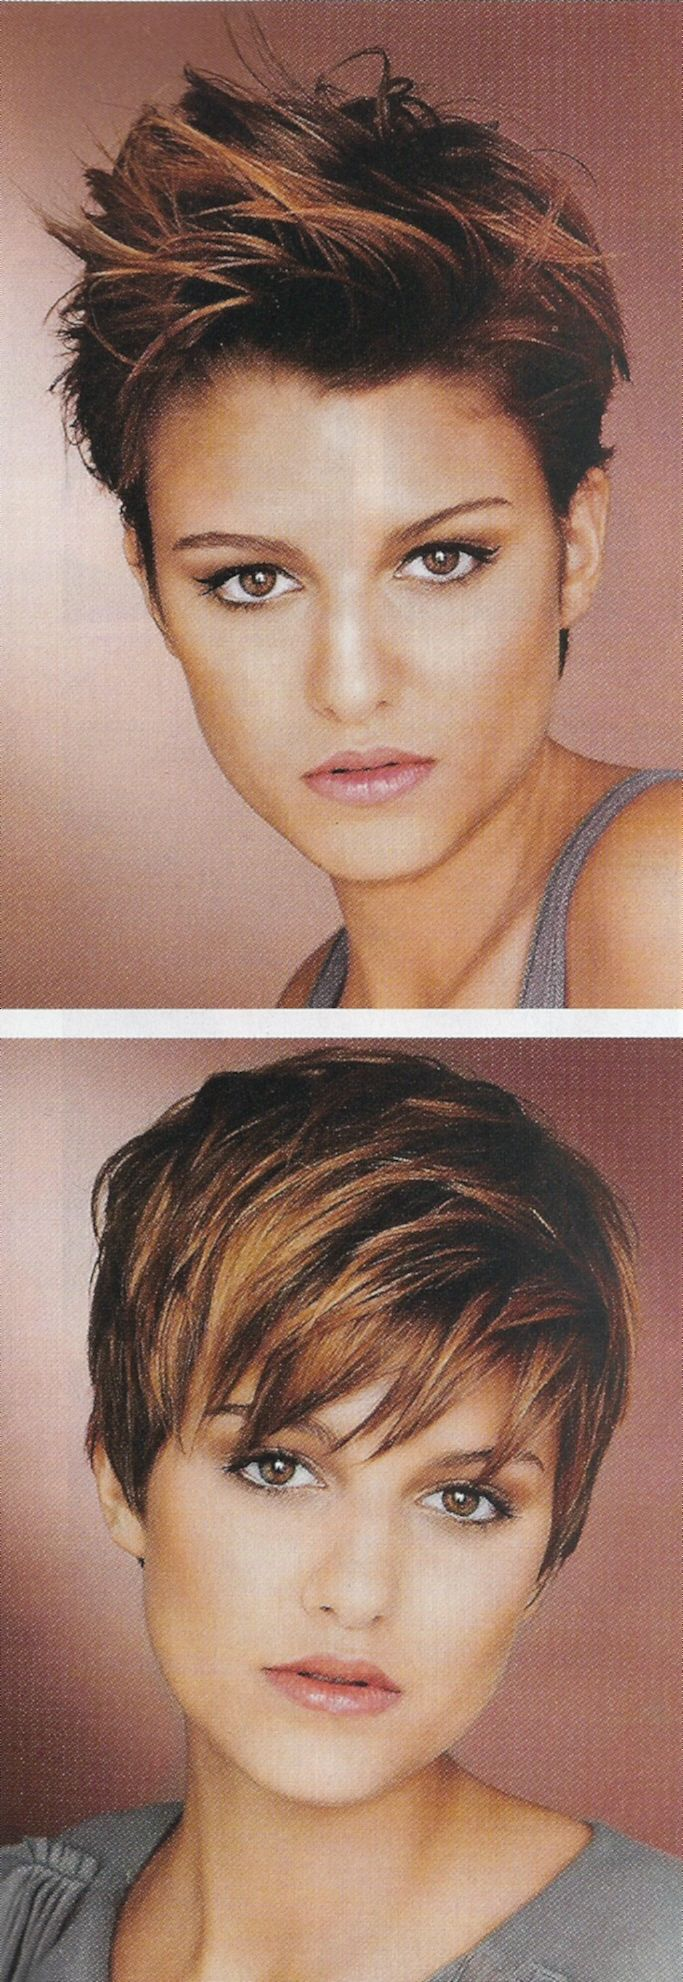 """Pixie Hairstyle Styled Two Ways. For boys or girls."" // or the other kinds of girls. =)"